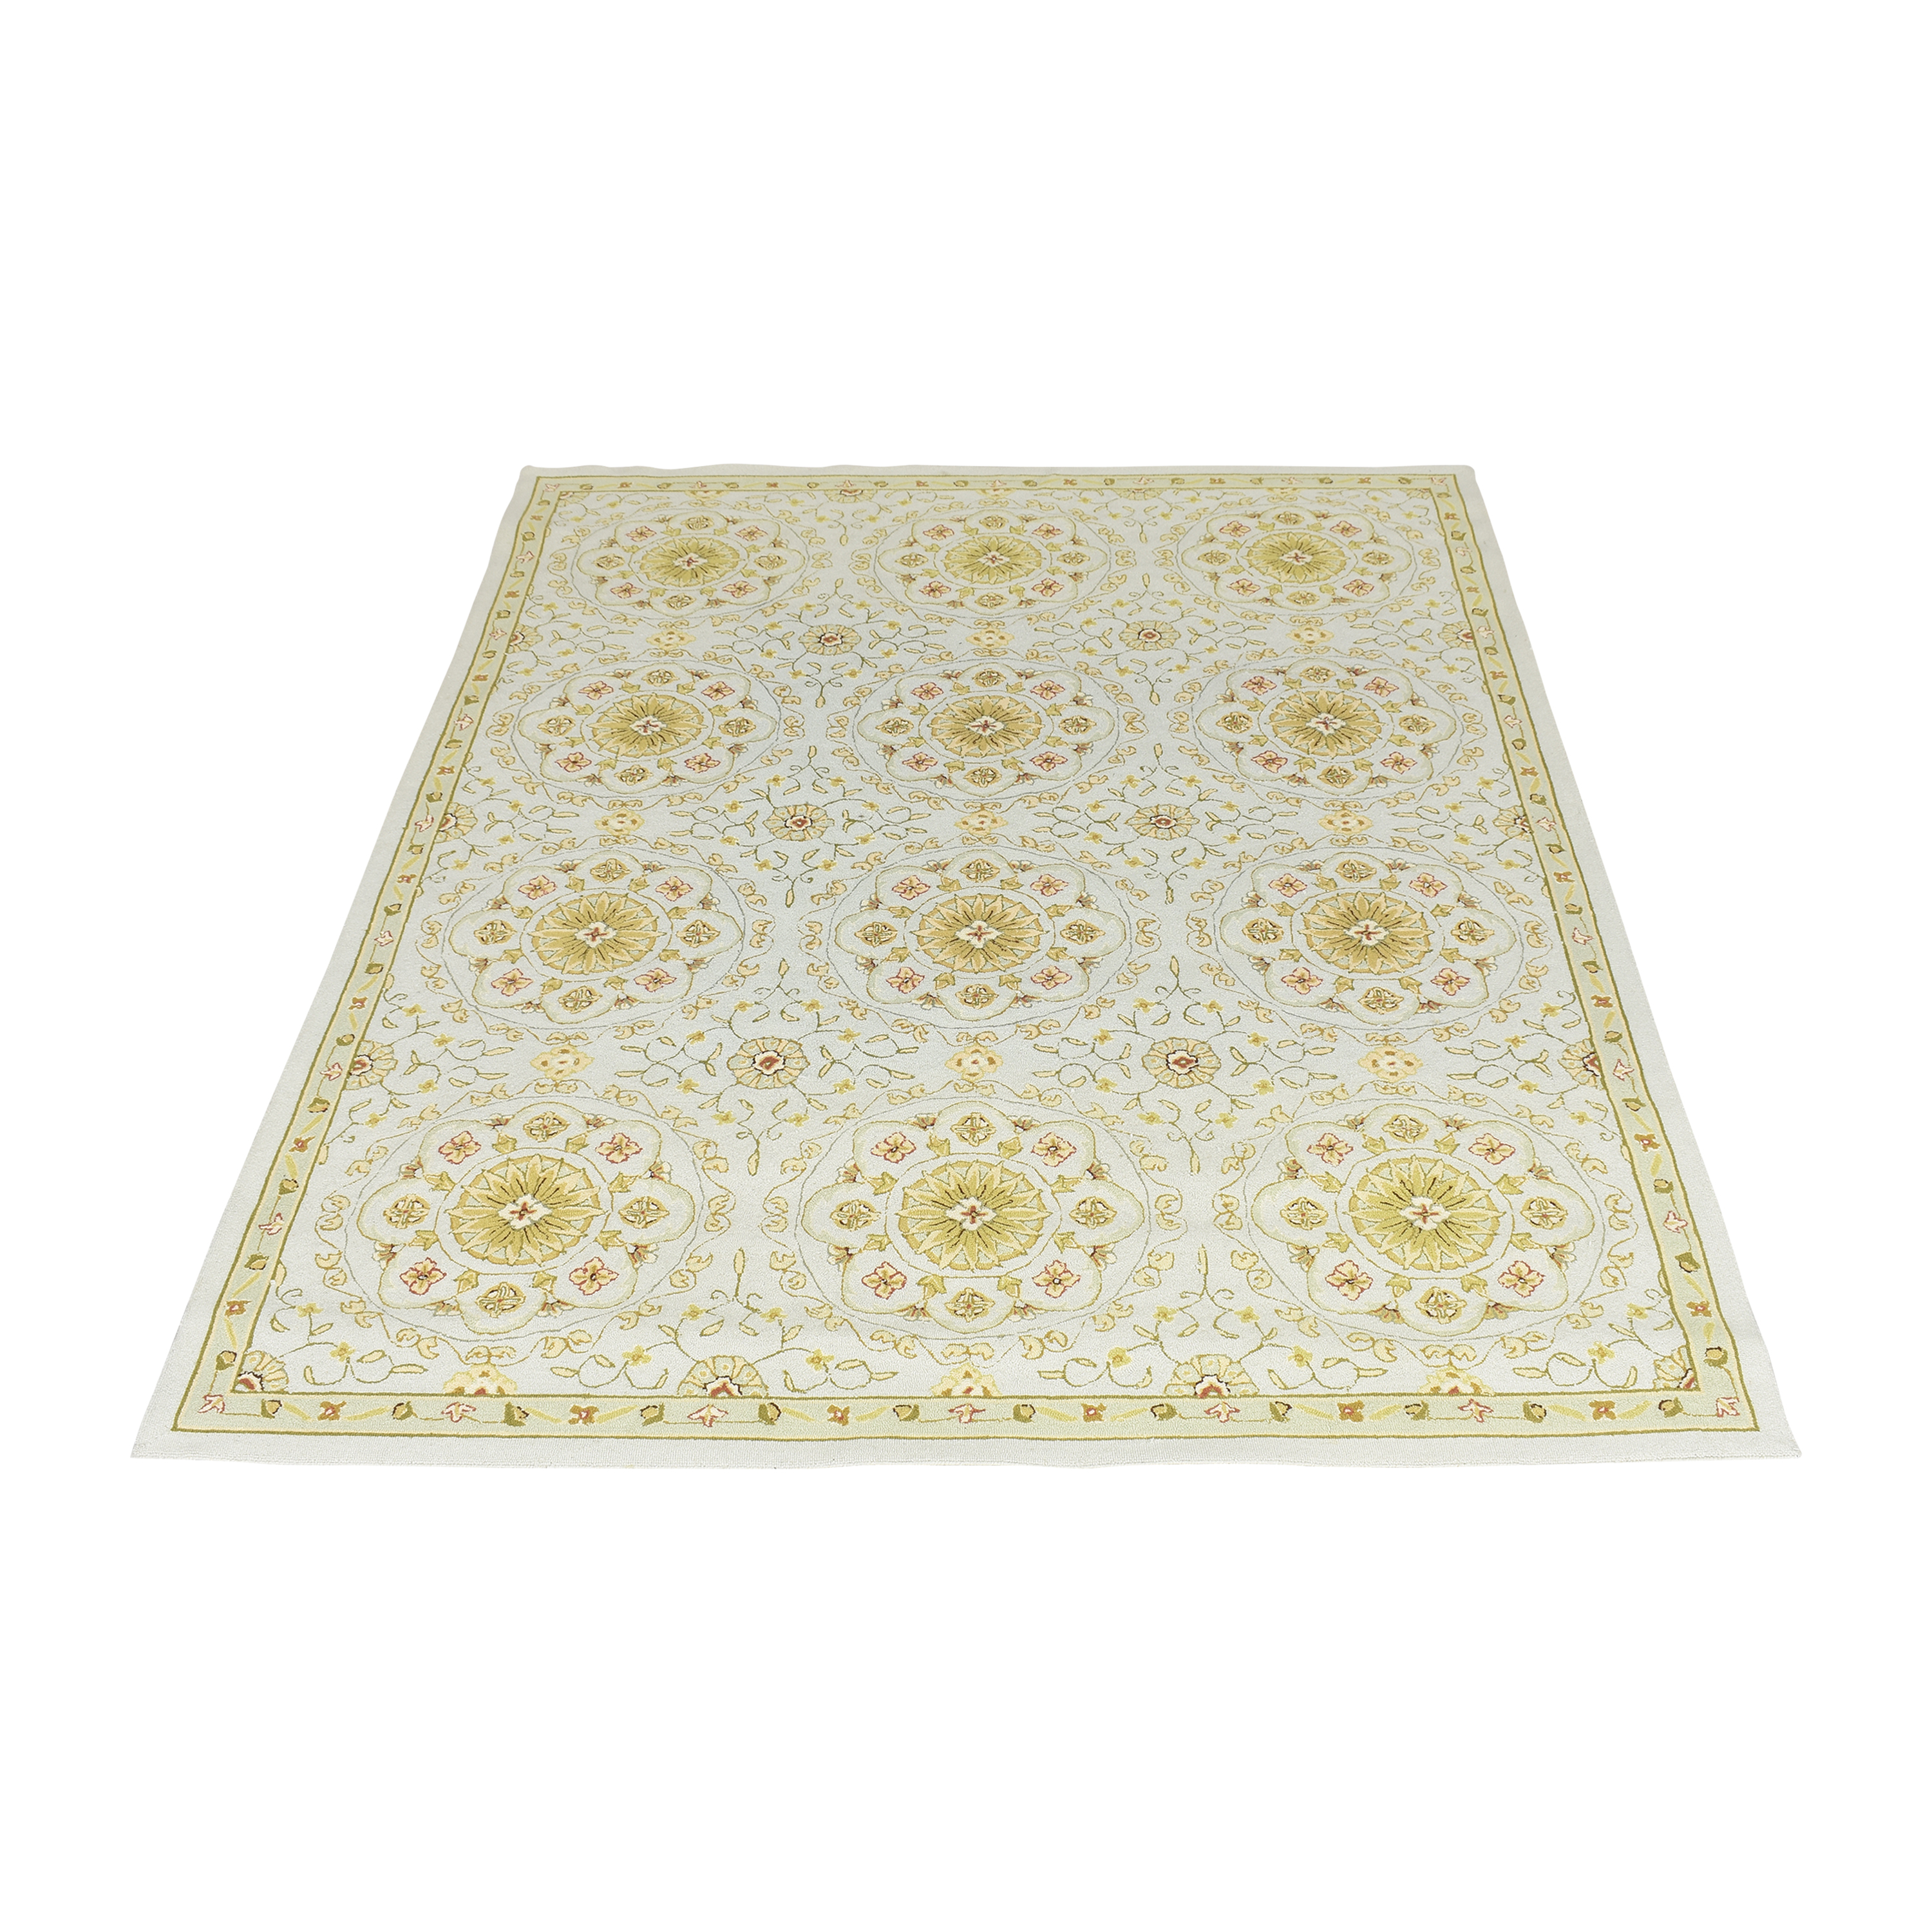 Safavieh Chelsea Collection Rug sale